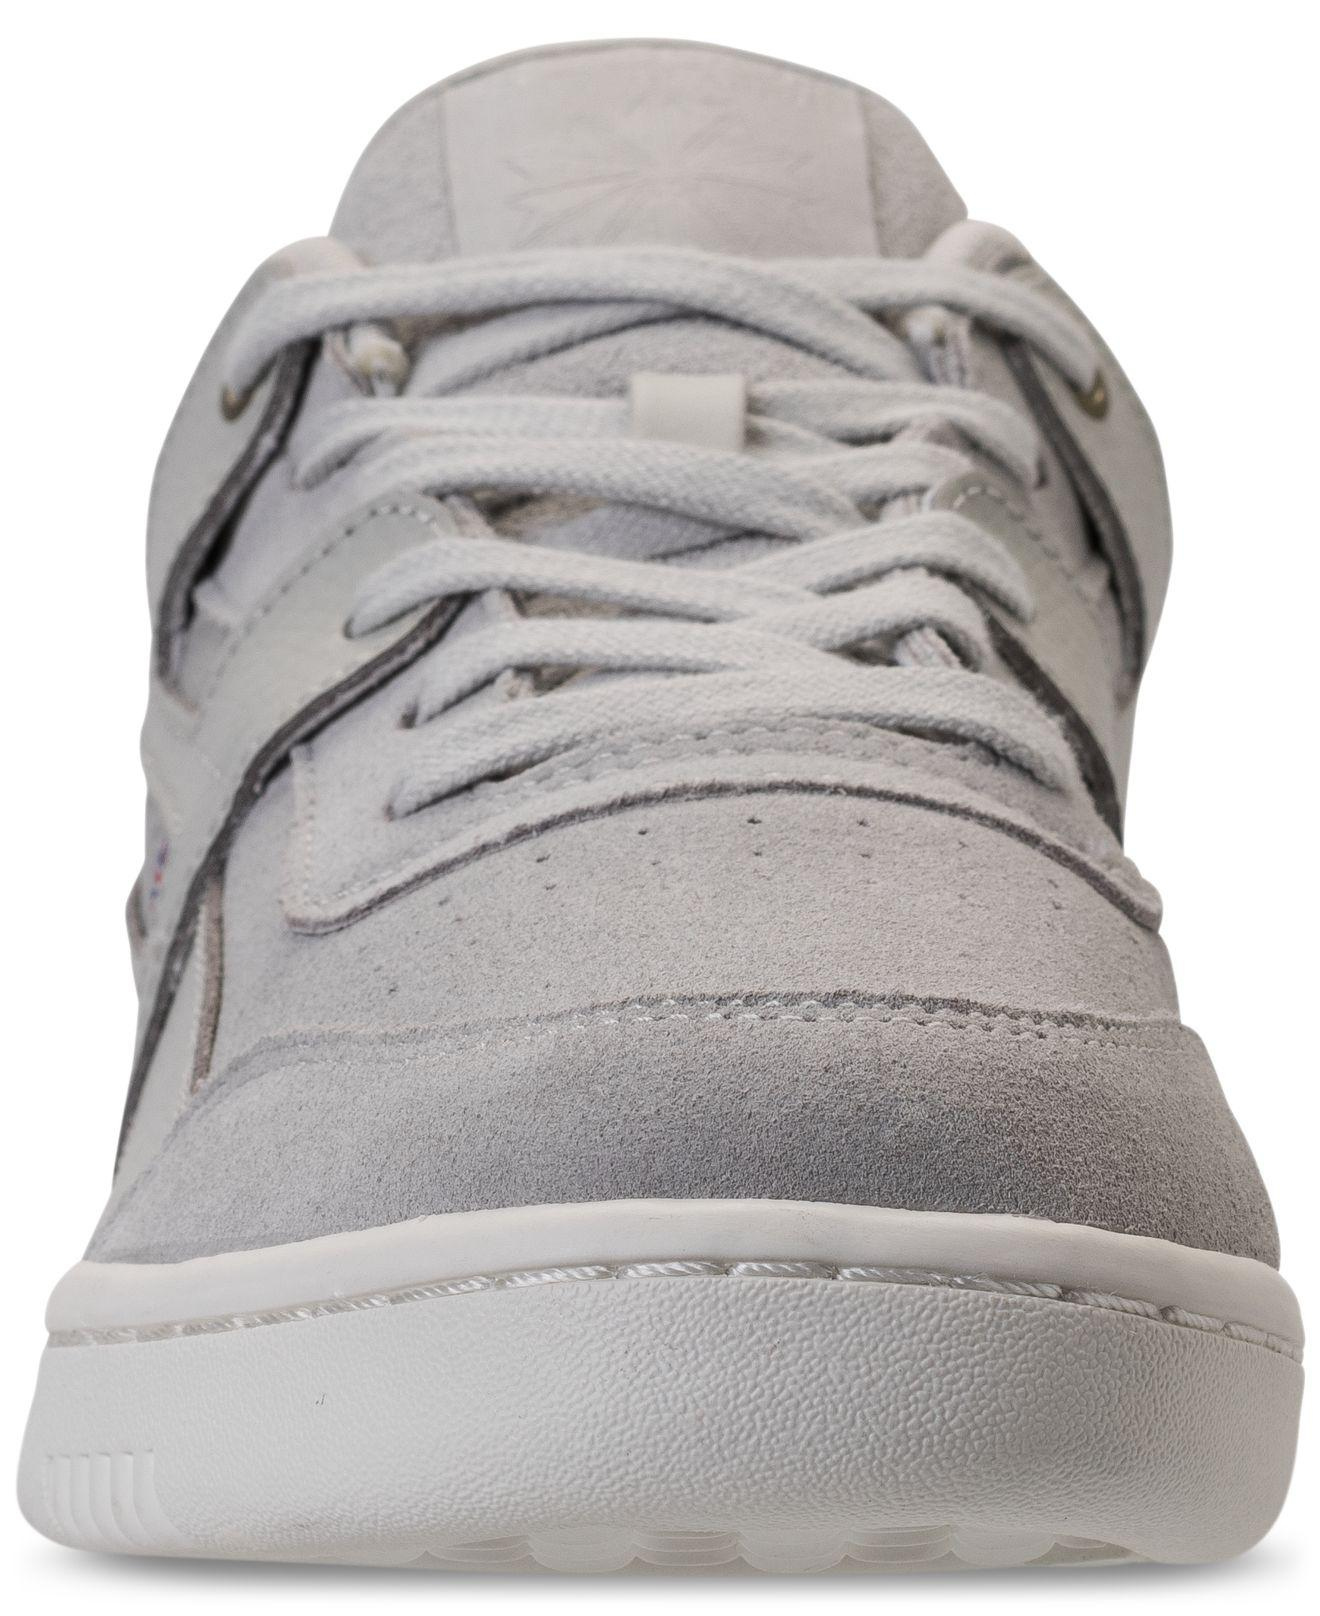 b63866137b6f Lyst - Reebok Workout Plus Mcc Casual Sneakers From Finish Line in ...